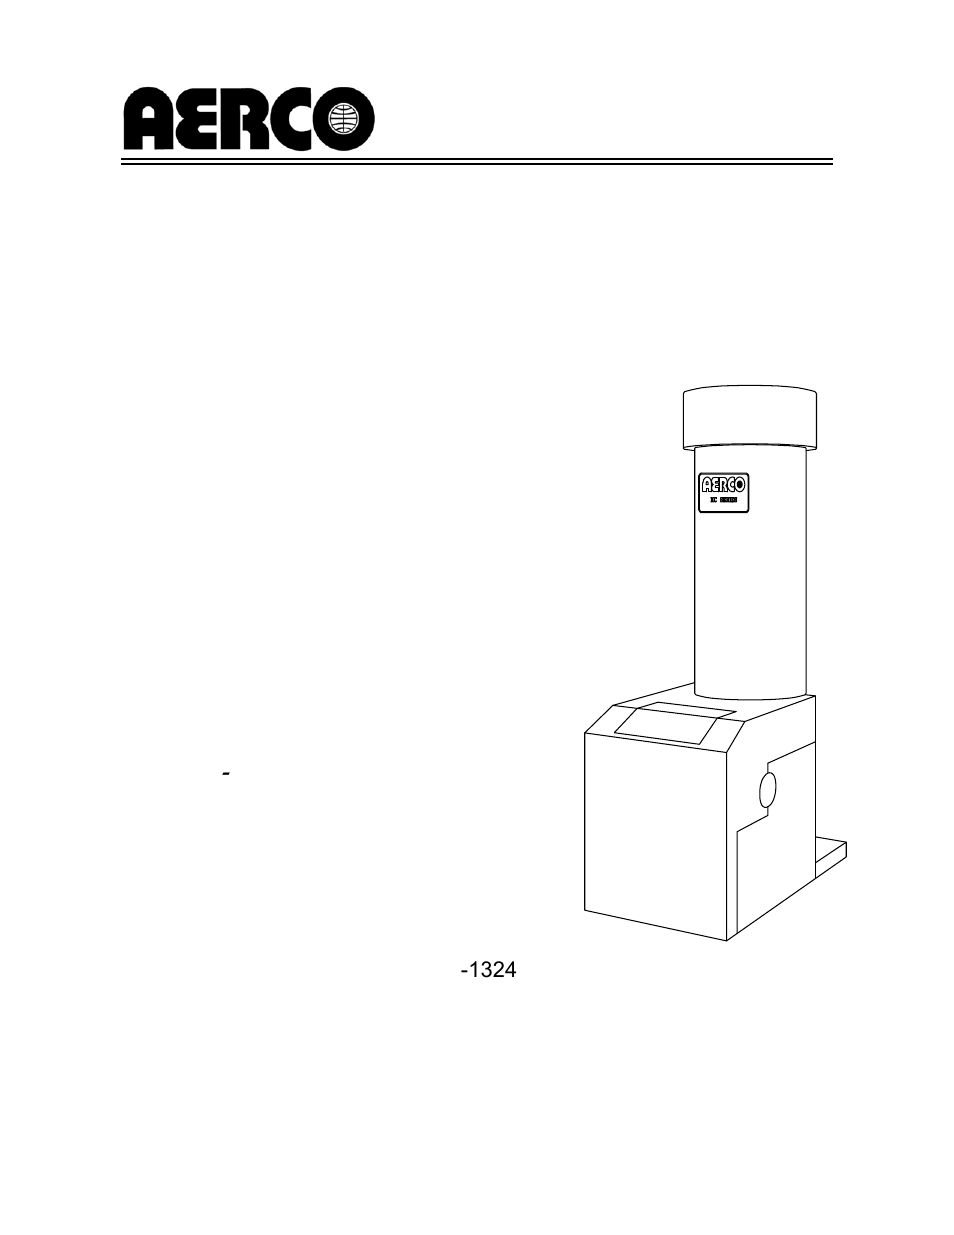 aerco kc1000 boiler equipped with c more version 3 04 user manual rh manualsdir com aerco boiler installation manual Home Boiler Wiring